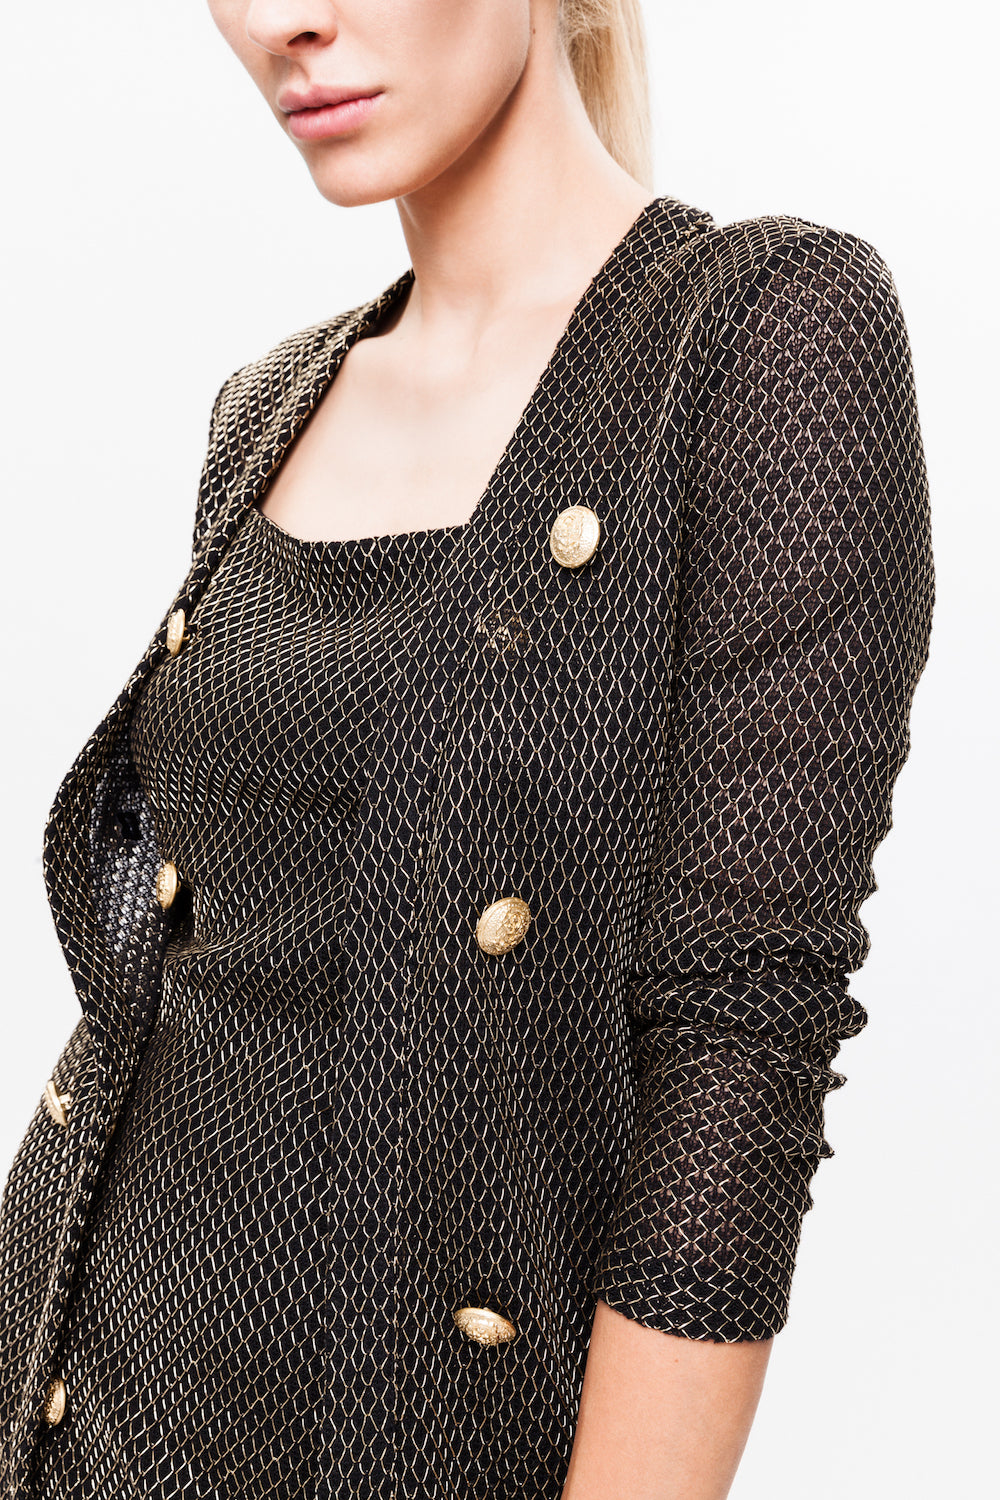 BRIANNA black gold cardigan